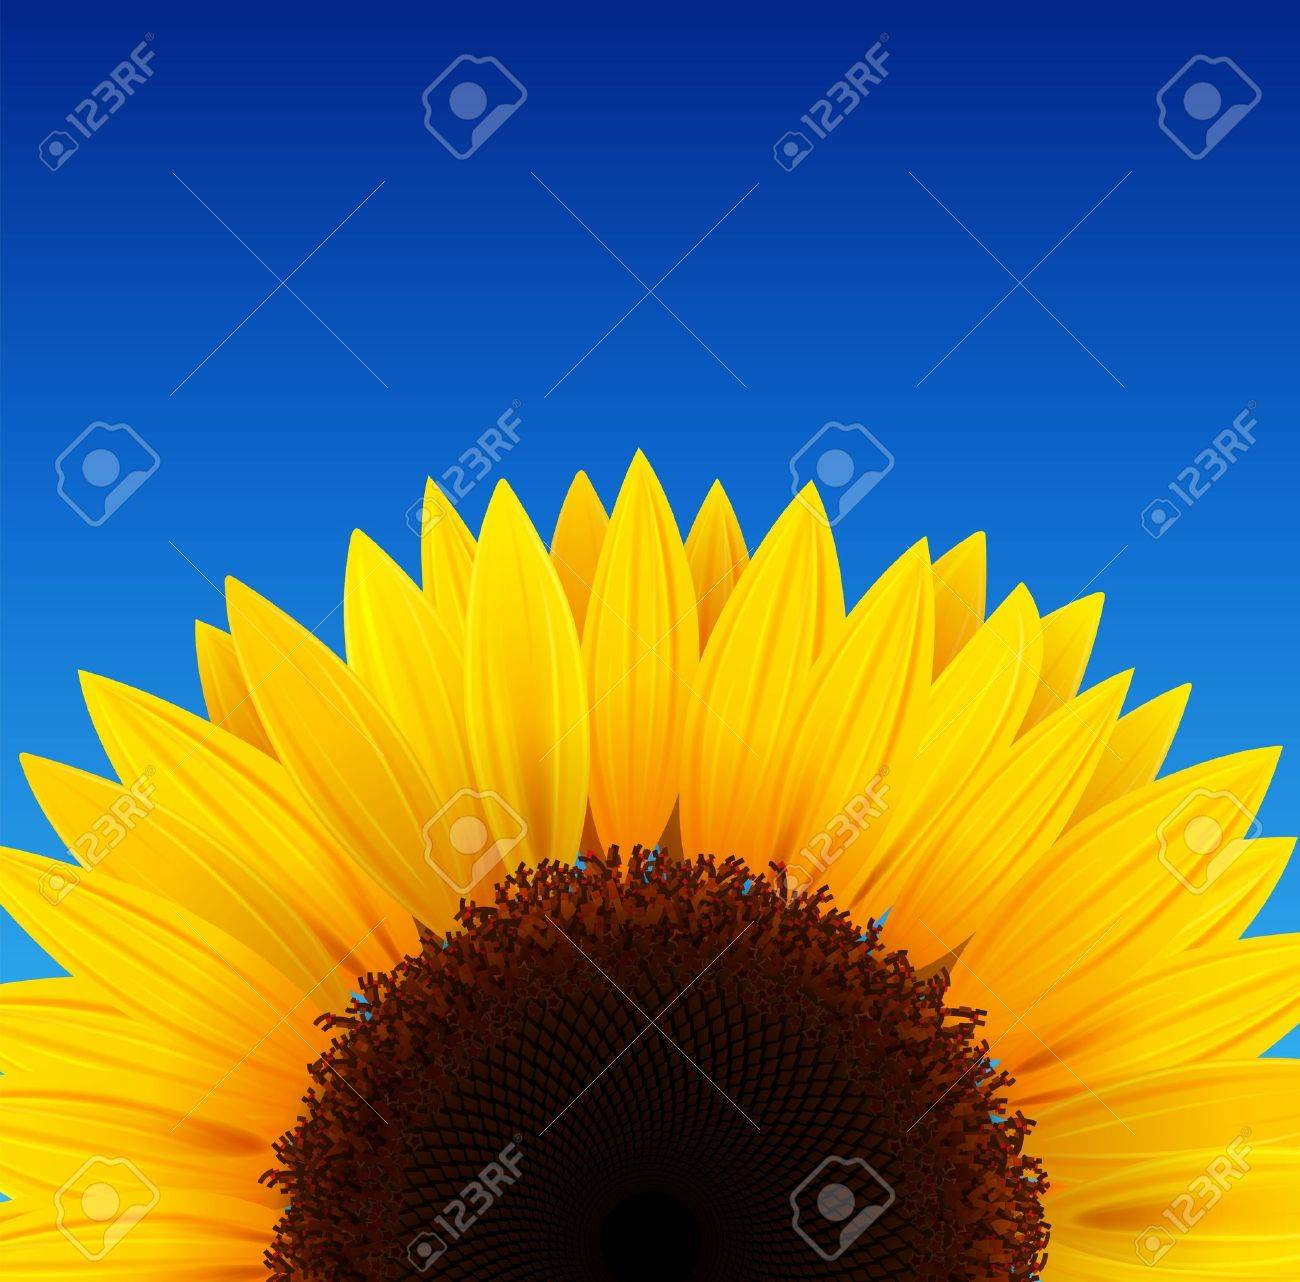 Sunflower background with blue sky. Stock Vector - 10058342